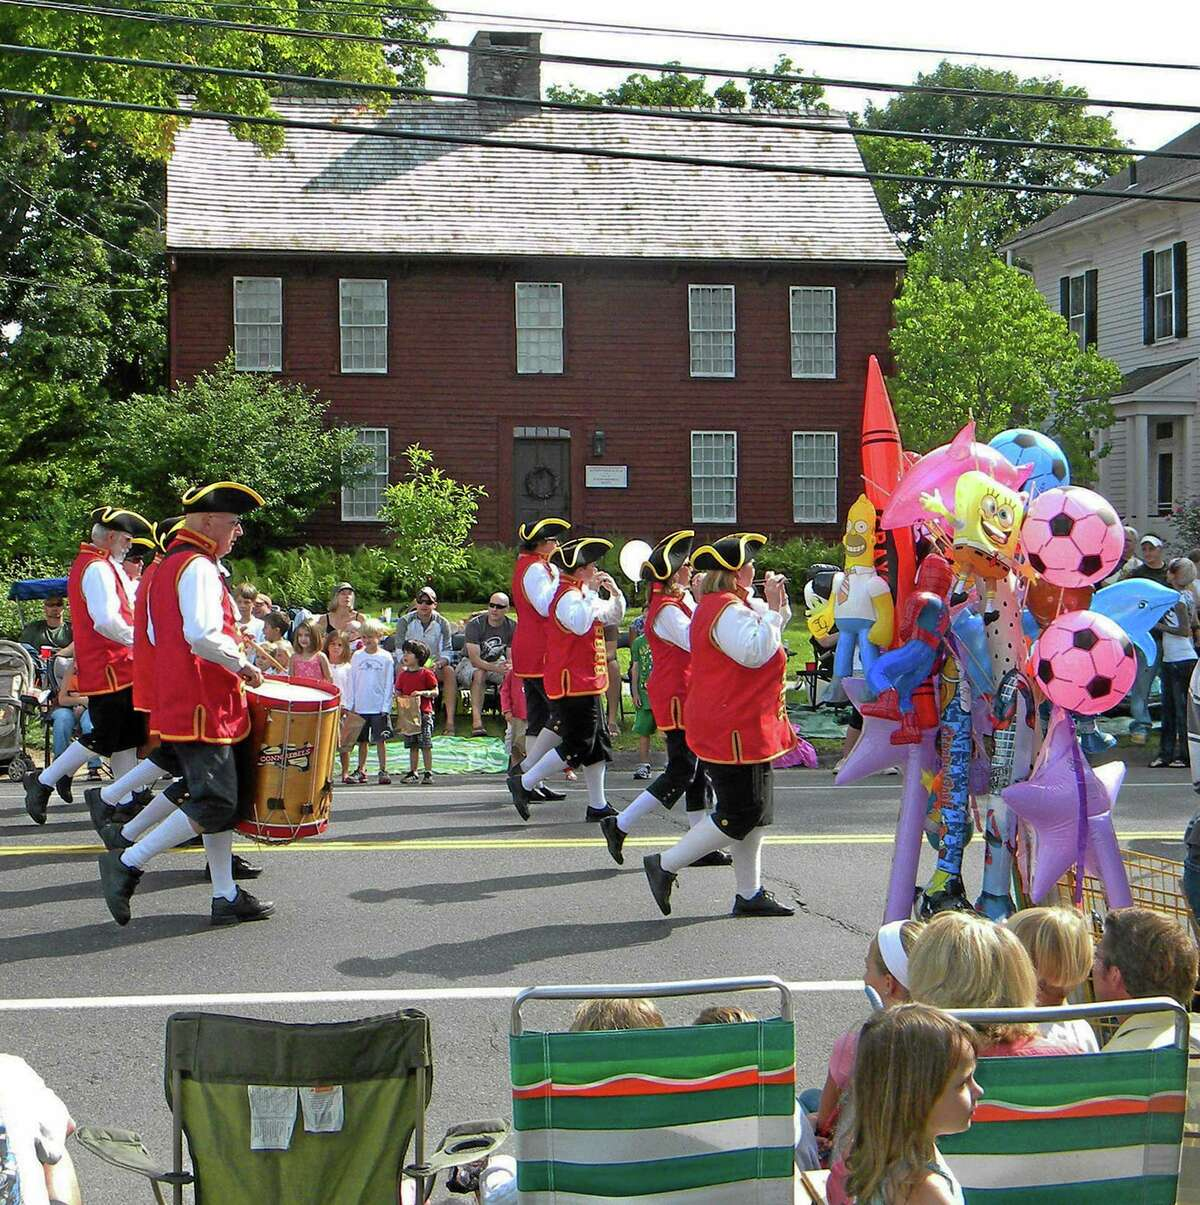 In this Sept. 7, 2009, photo, a fife-and-drum band in colonial-era uniforms marches past a souvenir seller and spectators during the Labor Day parade in Newtown, Conn. The parade has been a town fixture since Sept. 3, 1962. The town's upcoming 2013 parade faced for the first time calls and emails from regulars, folks who always marched, concerned about the most basic decision of all_how to proceed with a parade this year, nearly nine months after shootings at Sandy Hook Elementary School left 26 dead, 20 of them children. (AP Photo/Chris Sullivan)